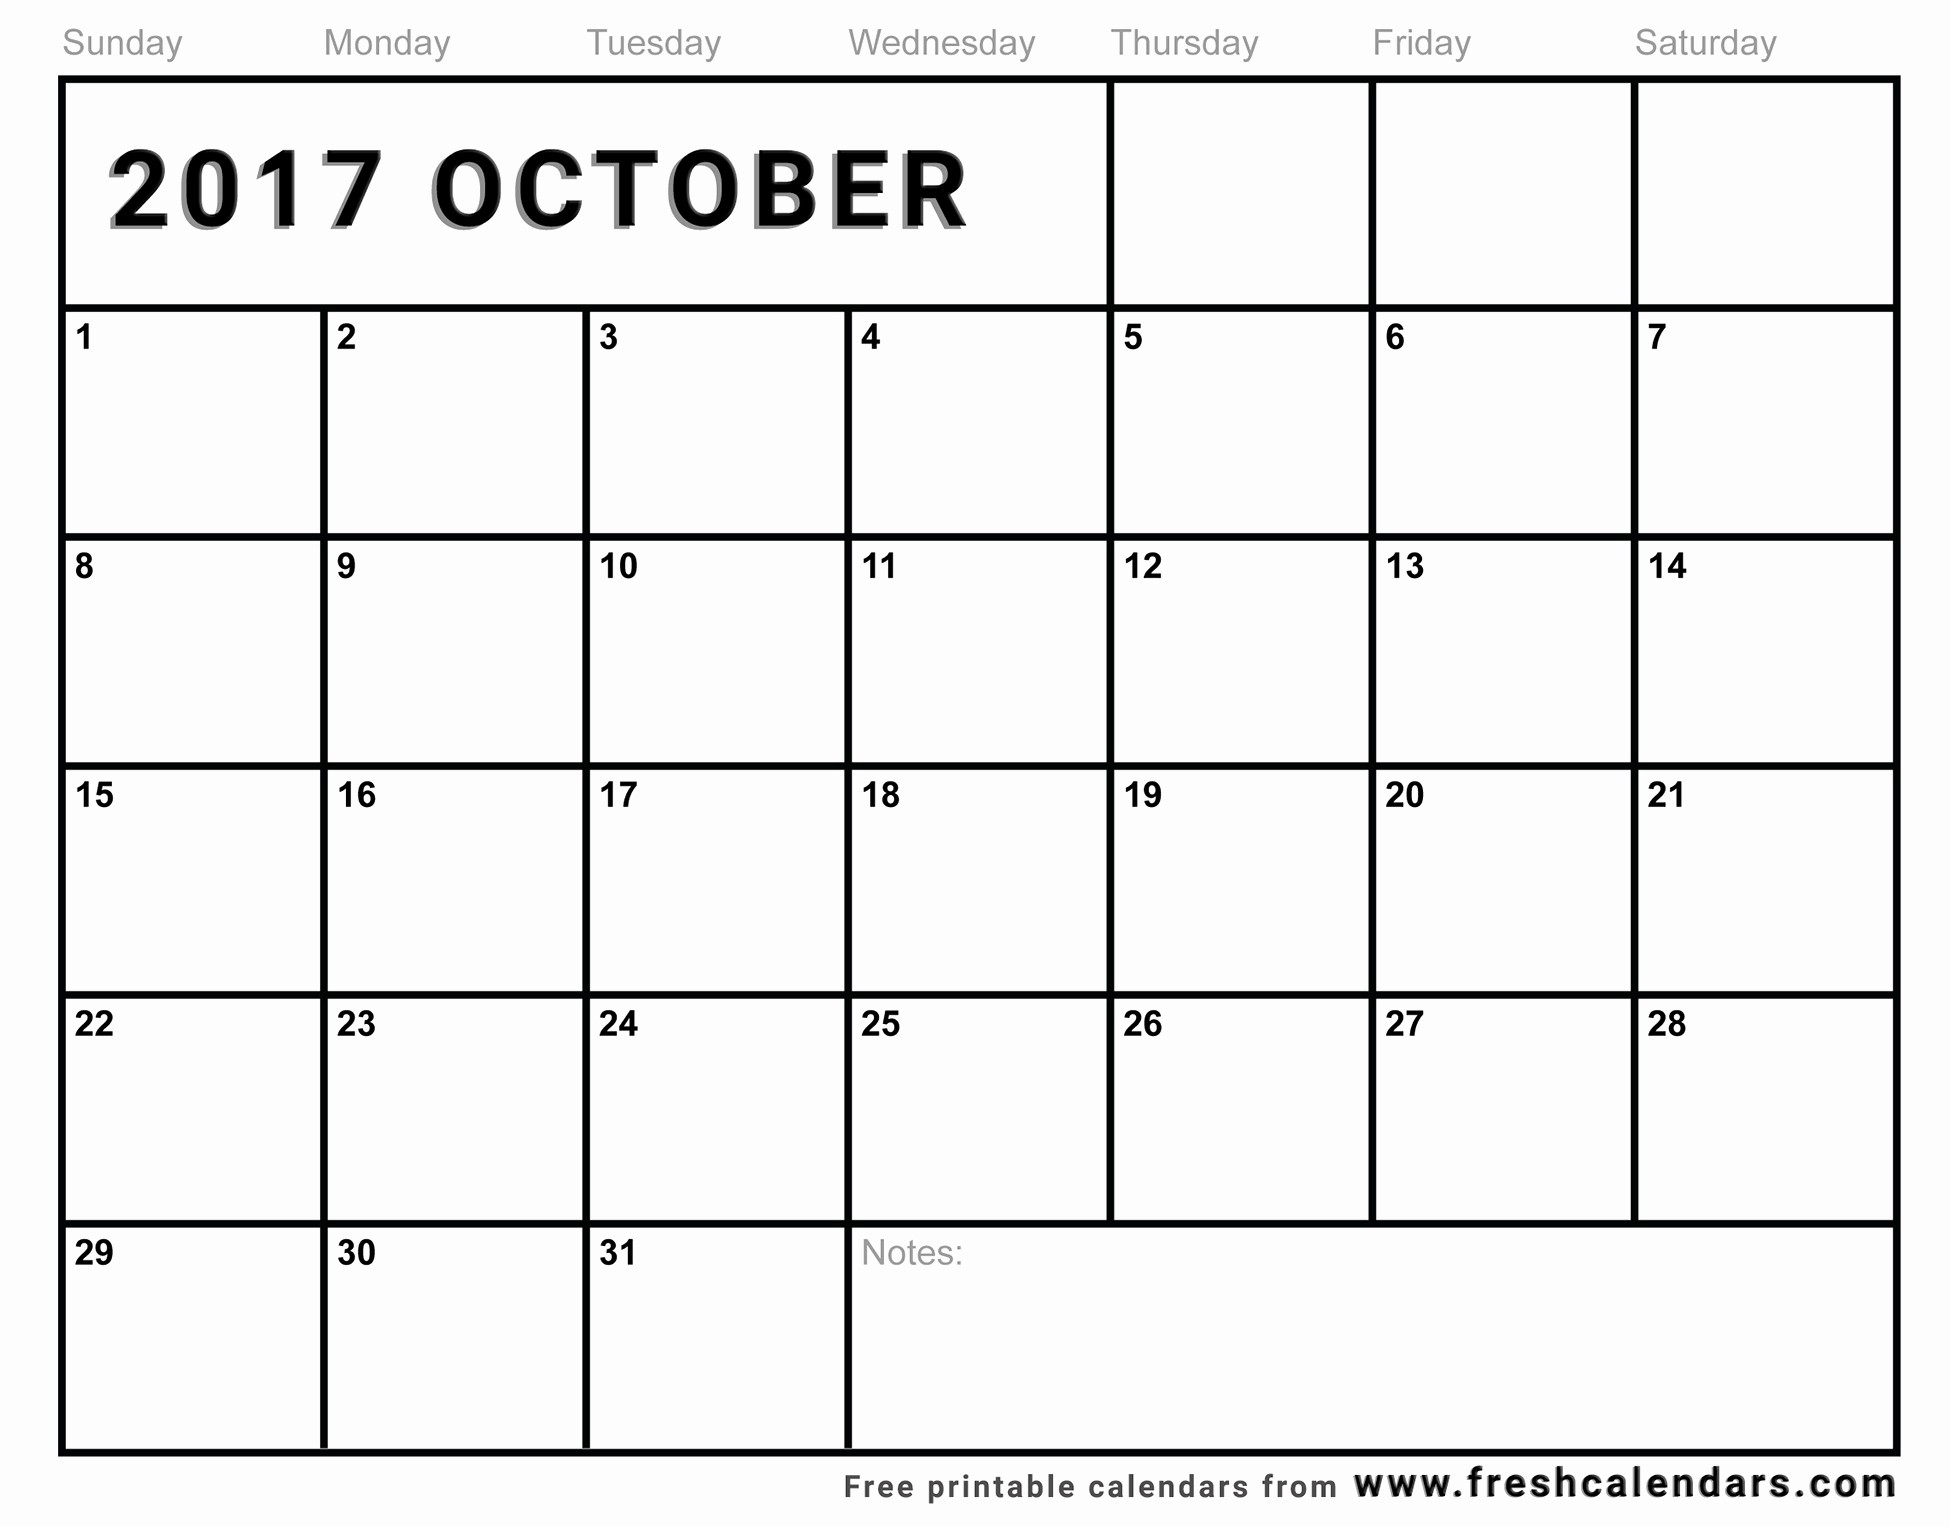 Free Printable Weekly Calendars 2017 Awesome Blank October 2017 Calendar Printable Templates